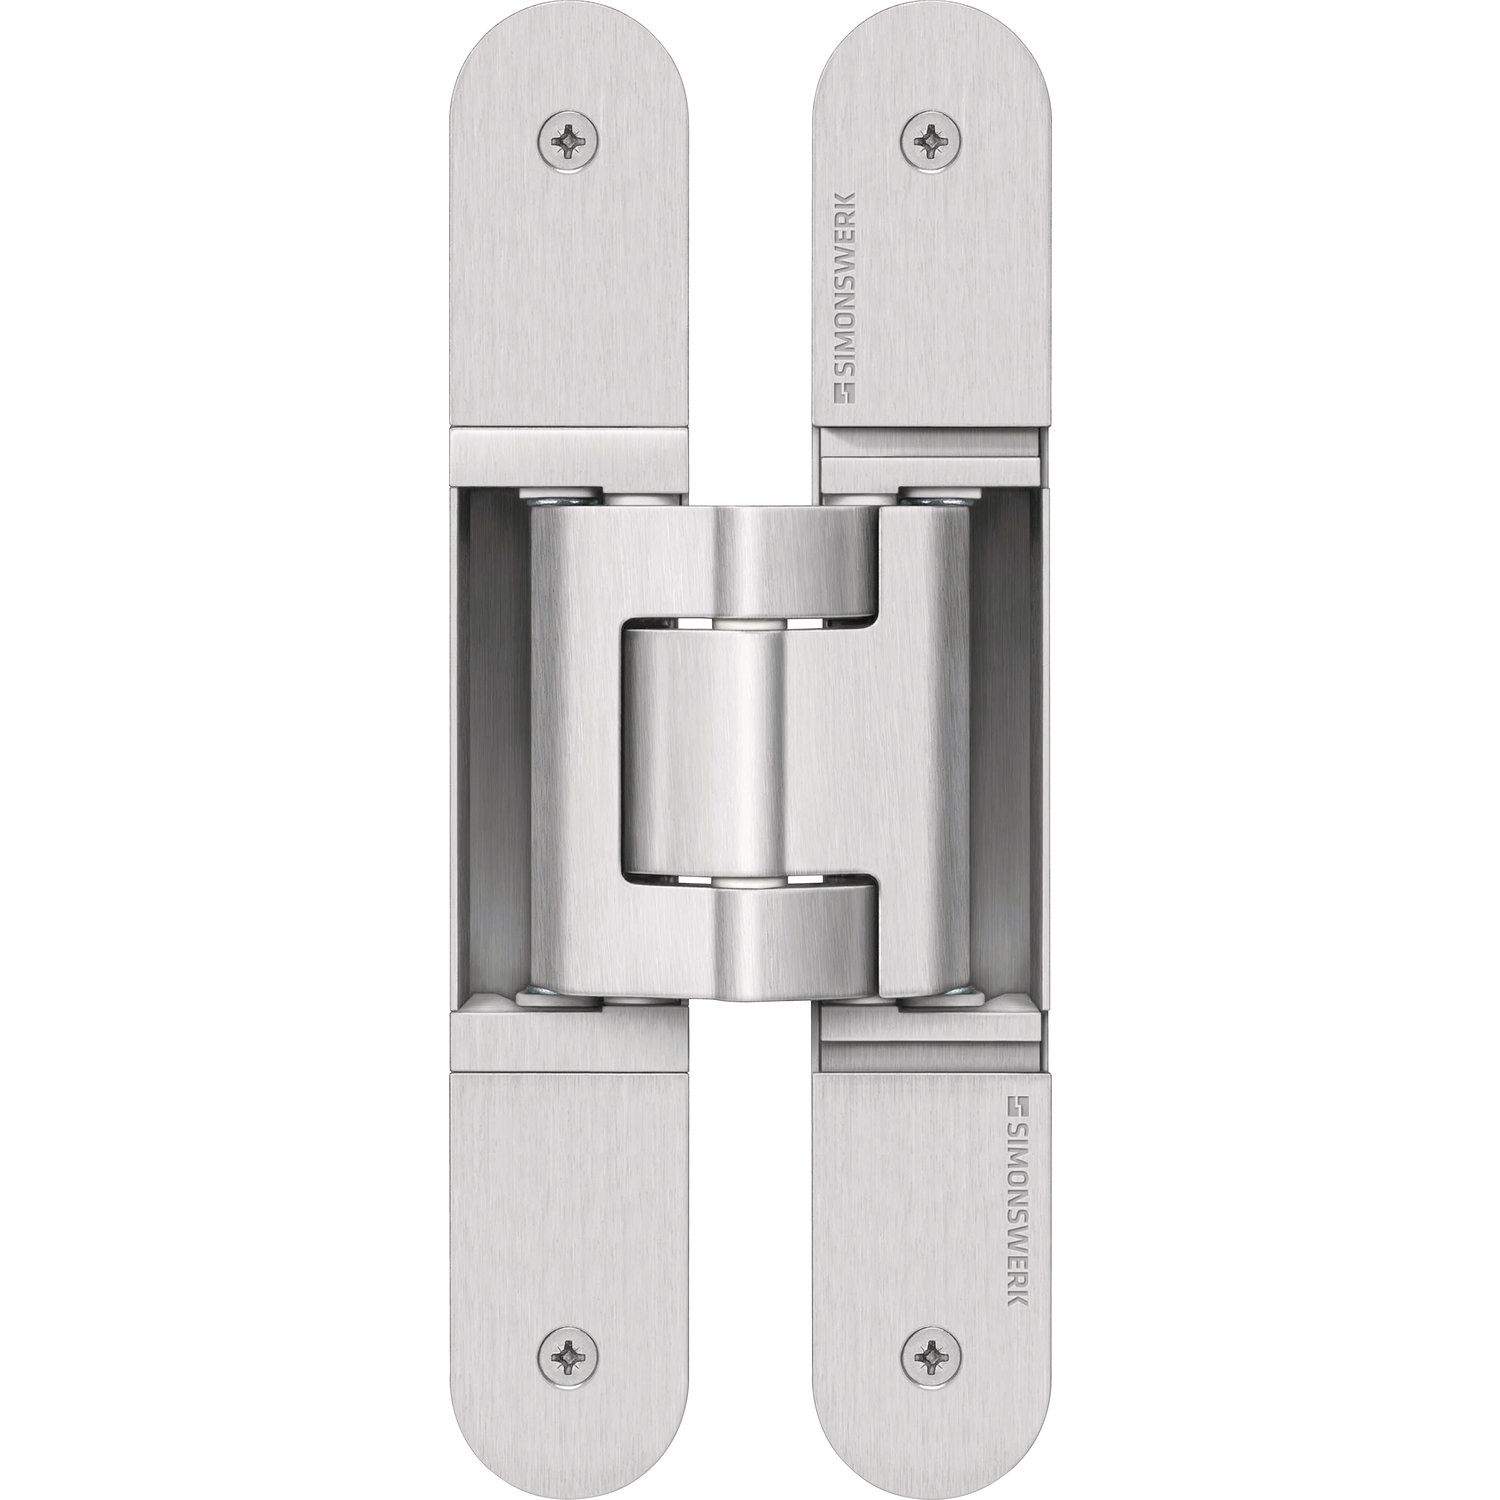 Simon 5  400687  12602  5  400611  0  Tectus Te 540  3D Door Hinge Covers for Blunt Door Stainless Steel Light, Price/Piece Simonswerk 5 400687 0 12602